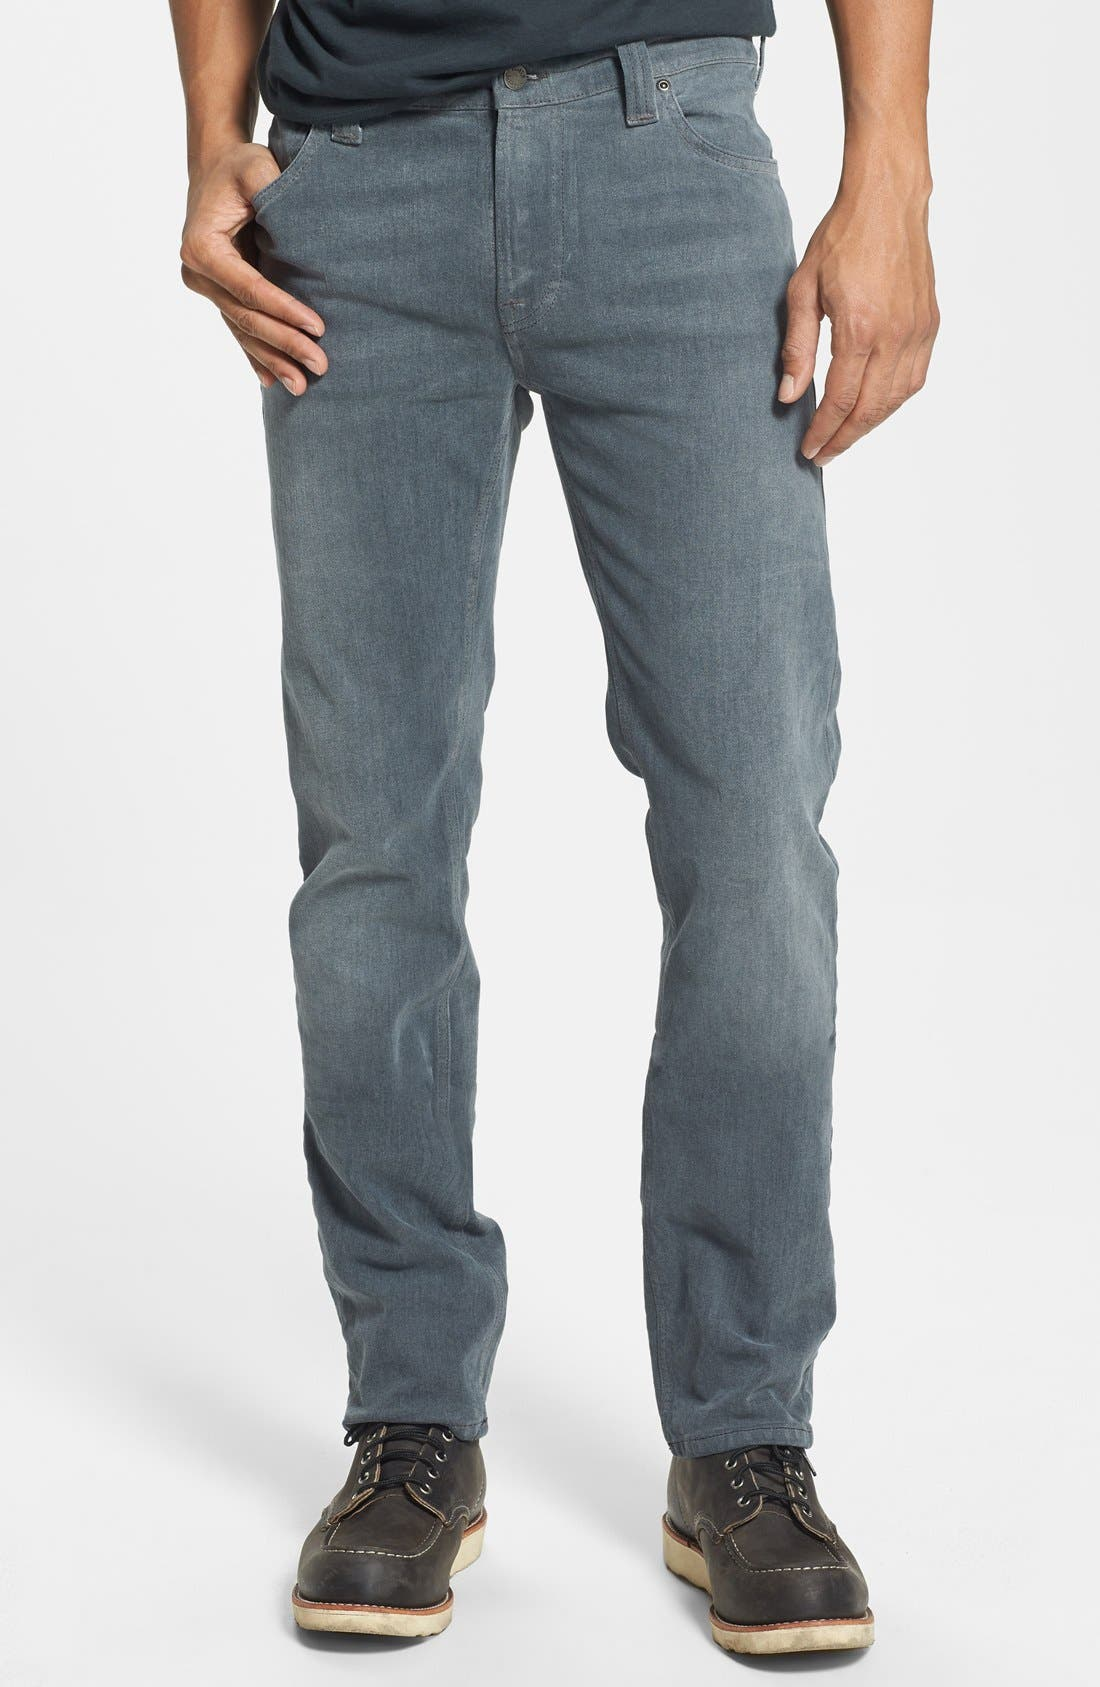 Alternate Image 1 Selected - Nudie Jeans 'Thin Finn' Skinny Fit Jeans (Organic Lighter Shade)